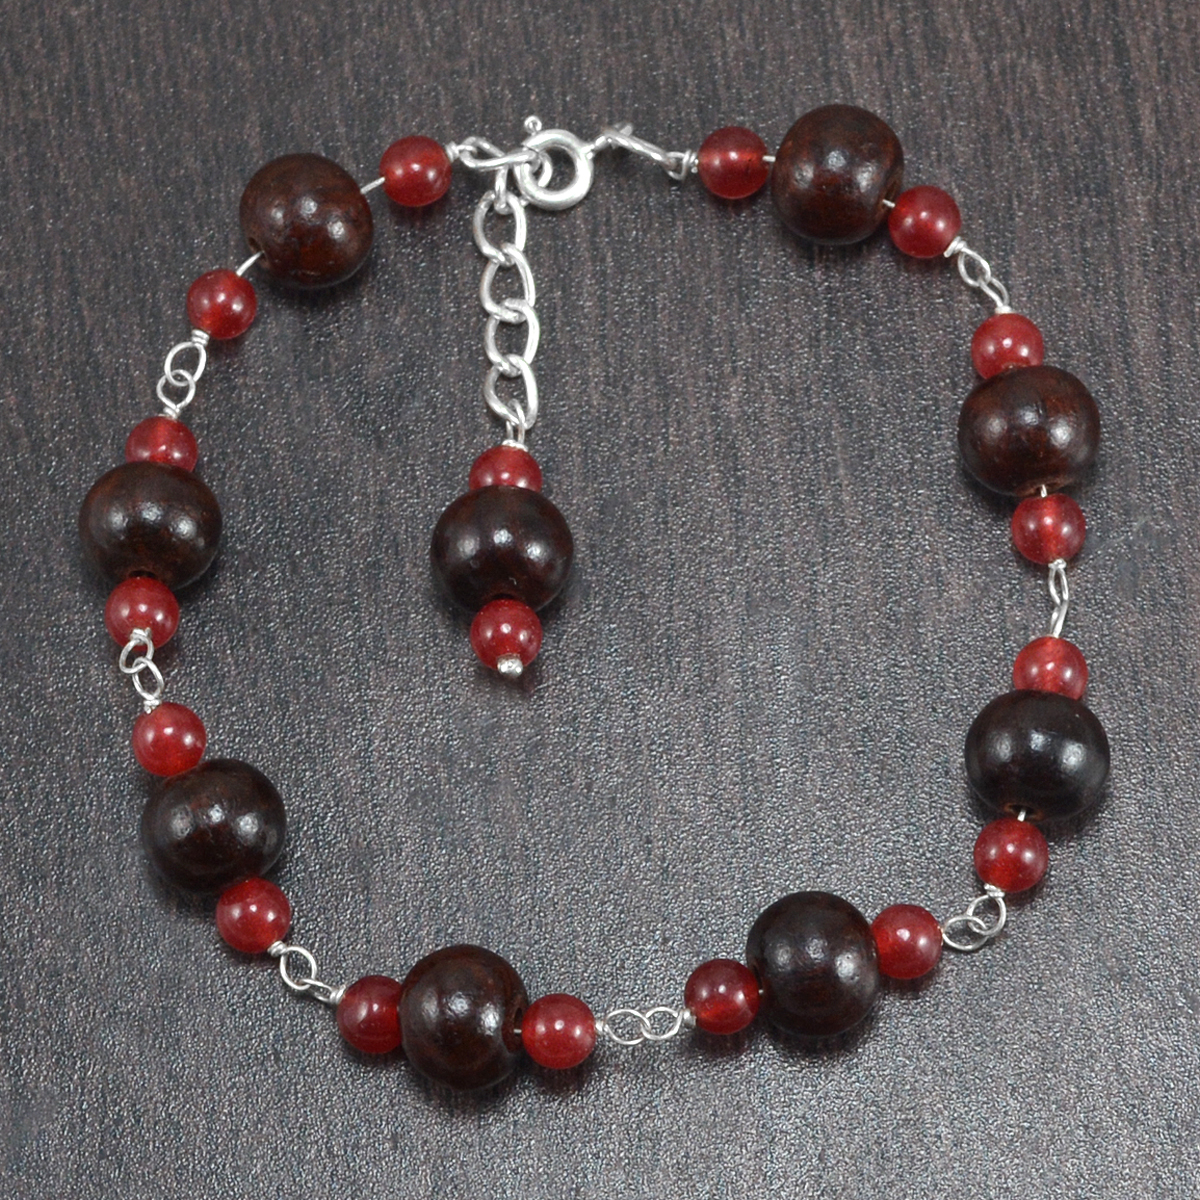 Carnelian 7 wood beads Necklace PG-156410